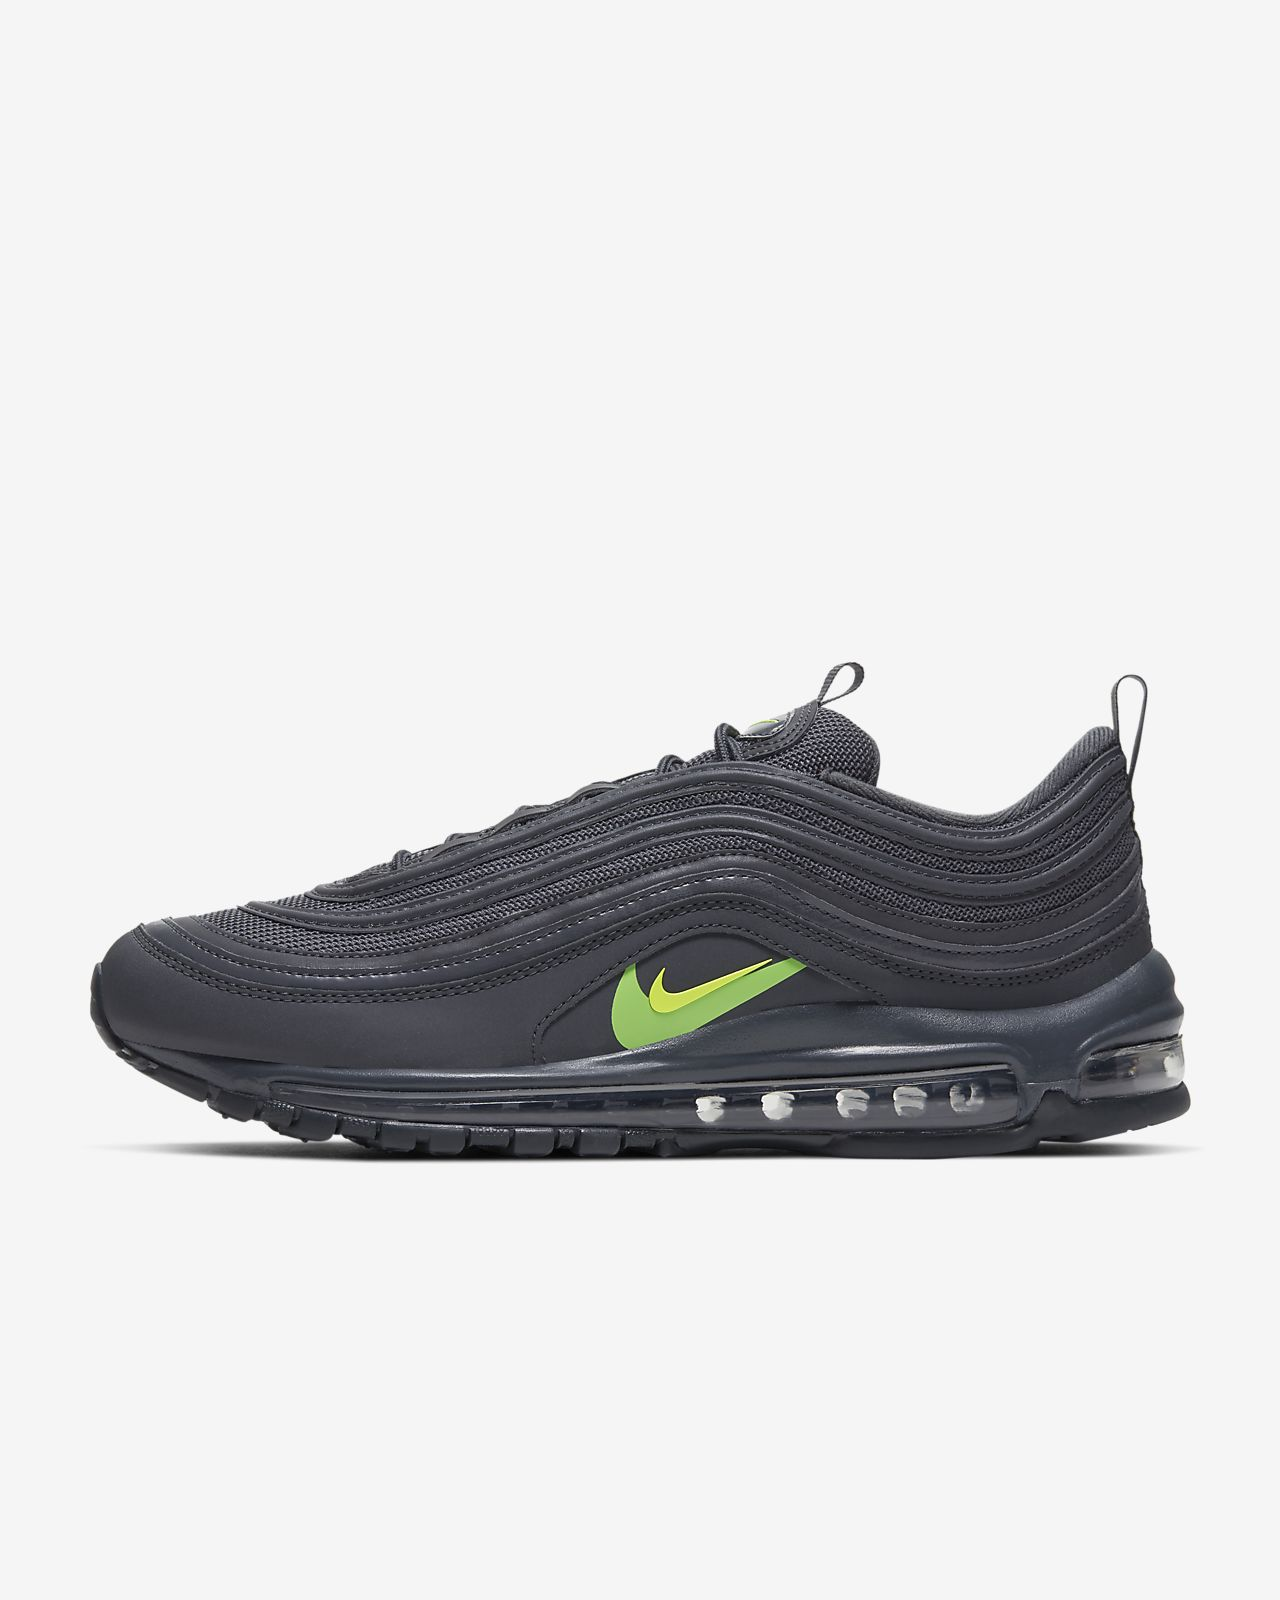 nike air max 97 black herren sale